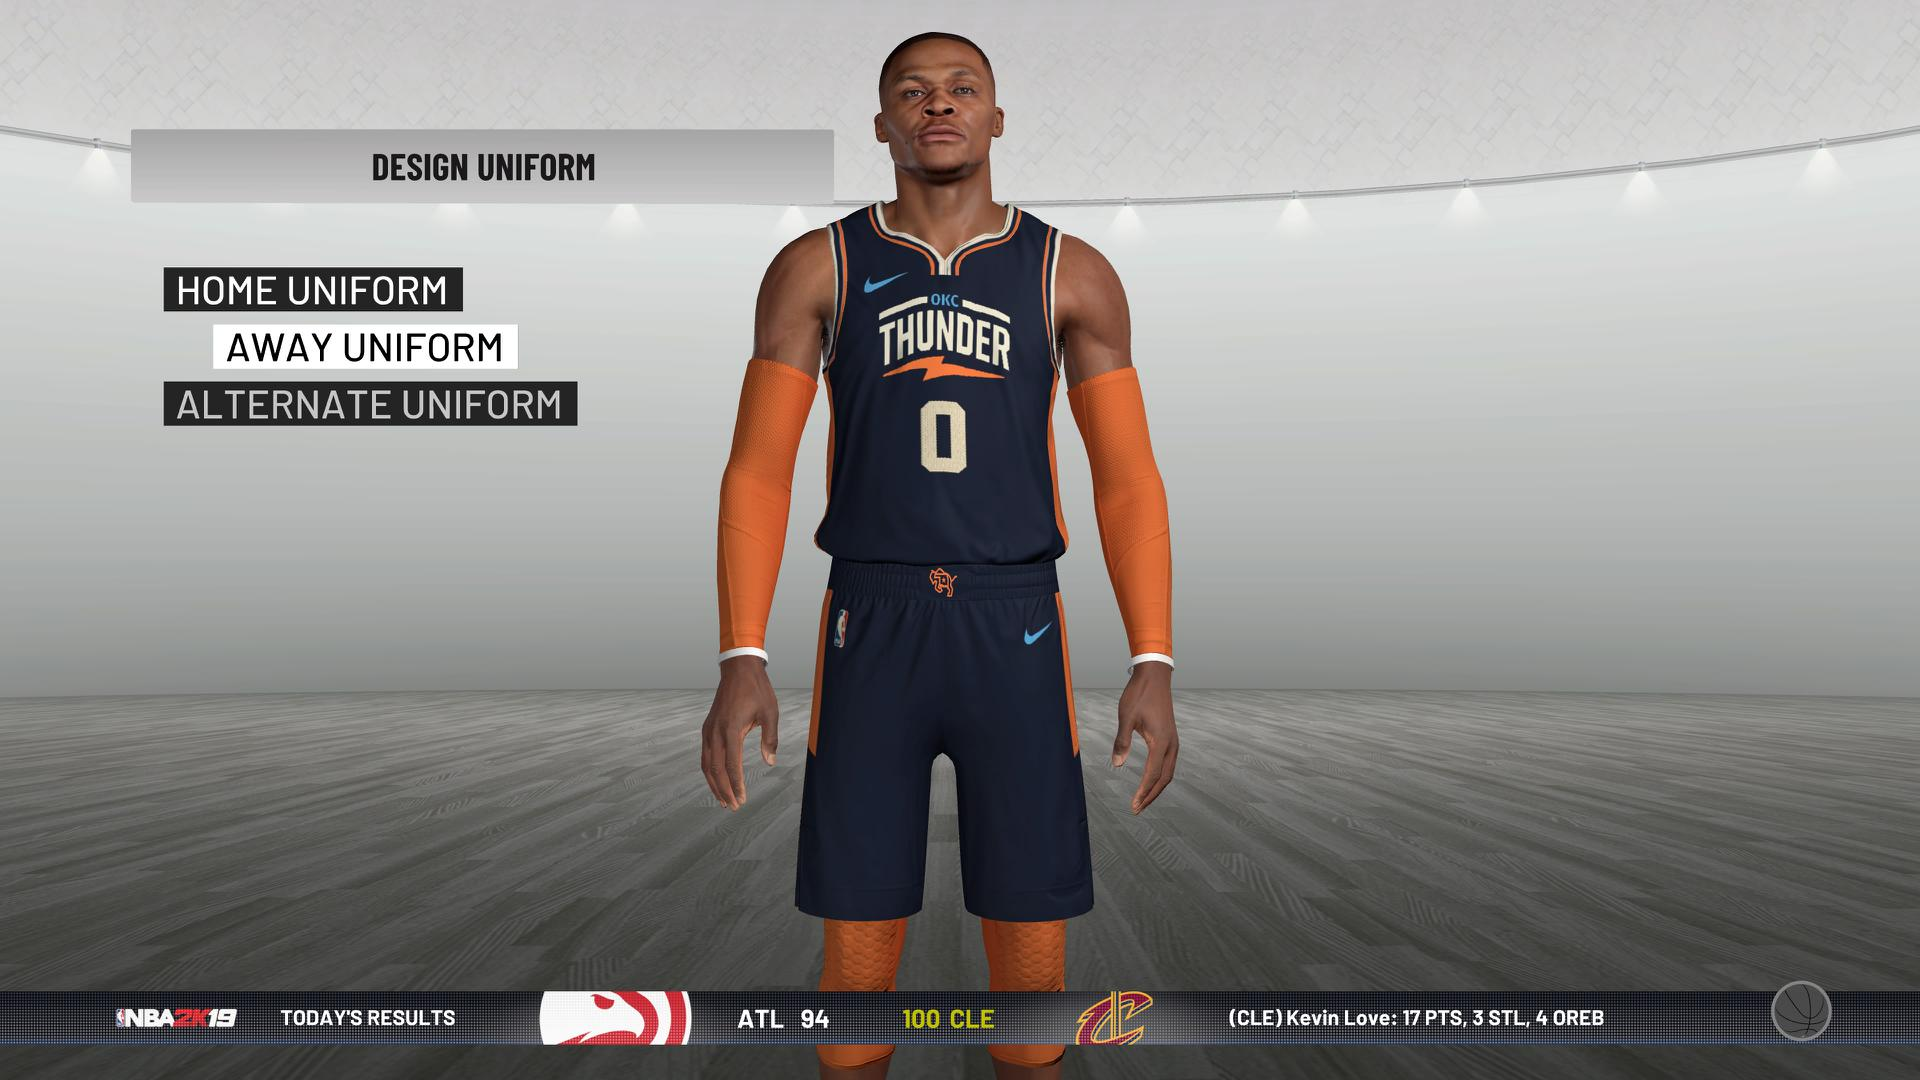 ac10a8474 NBA 2K19 Jerseys   Courts Creations - Page 22 - Operation Sports Forums